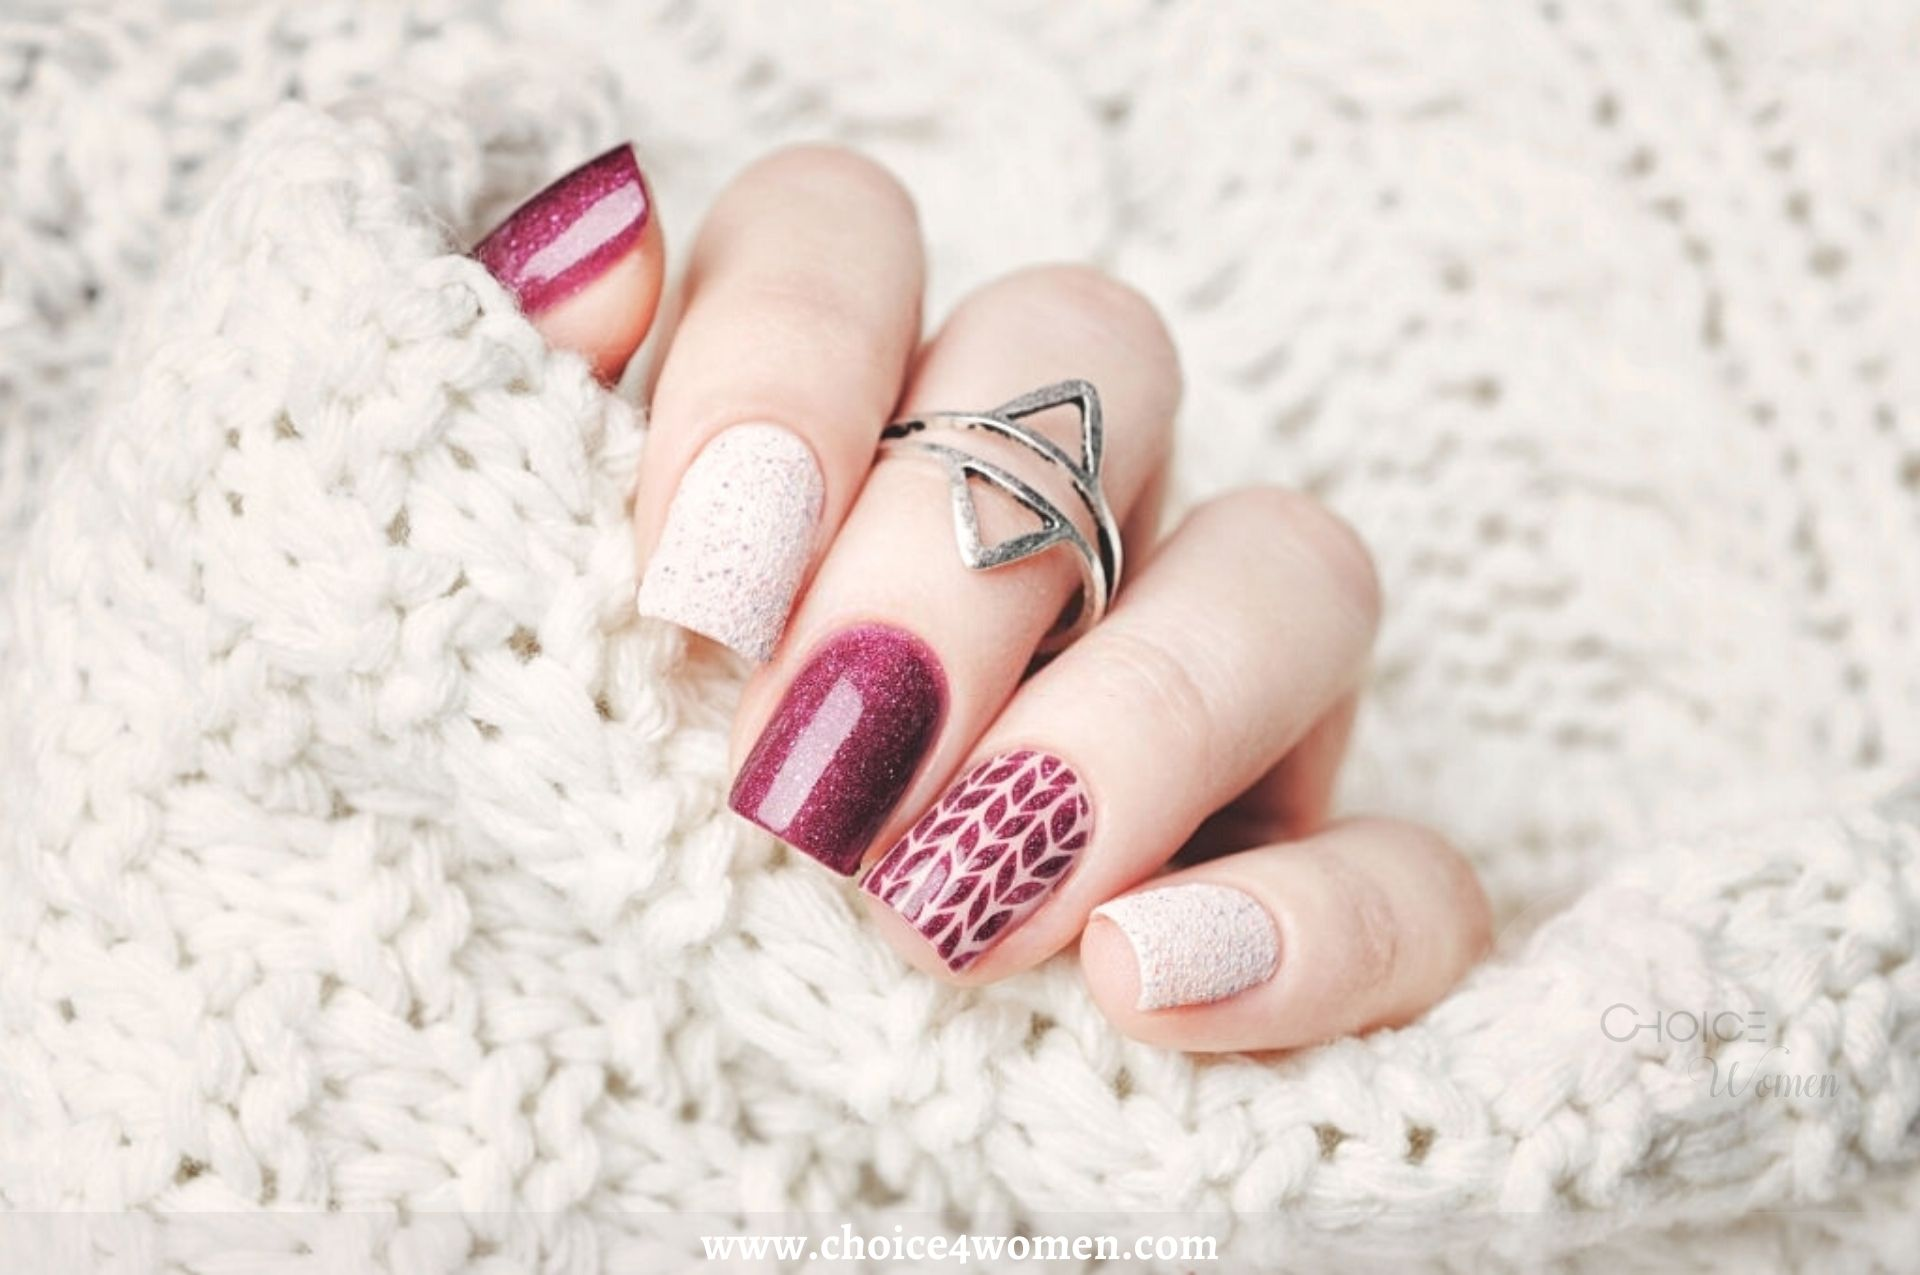 16 Latest Nail Art Designs You Should Try Right Now